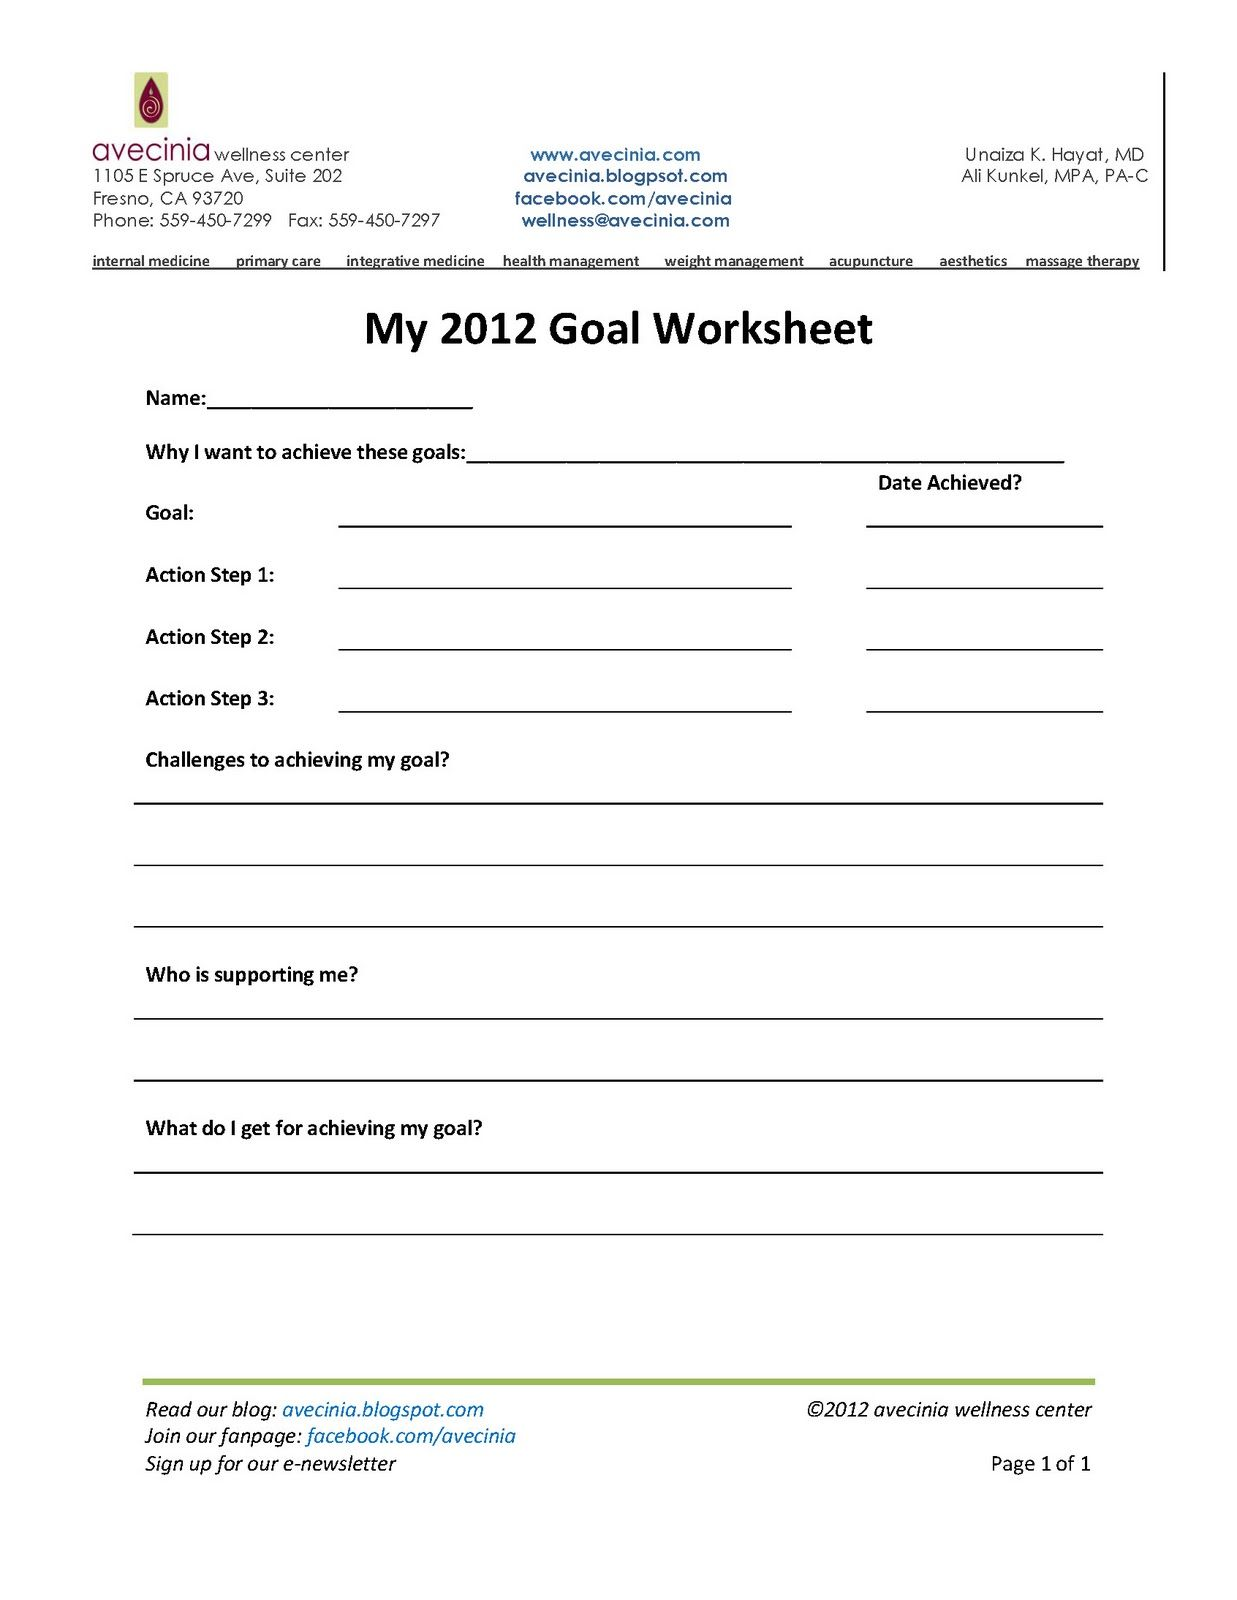 Worksheets Wellness Worksheets to charge of health and wellness worksheets today it difficult difficult